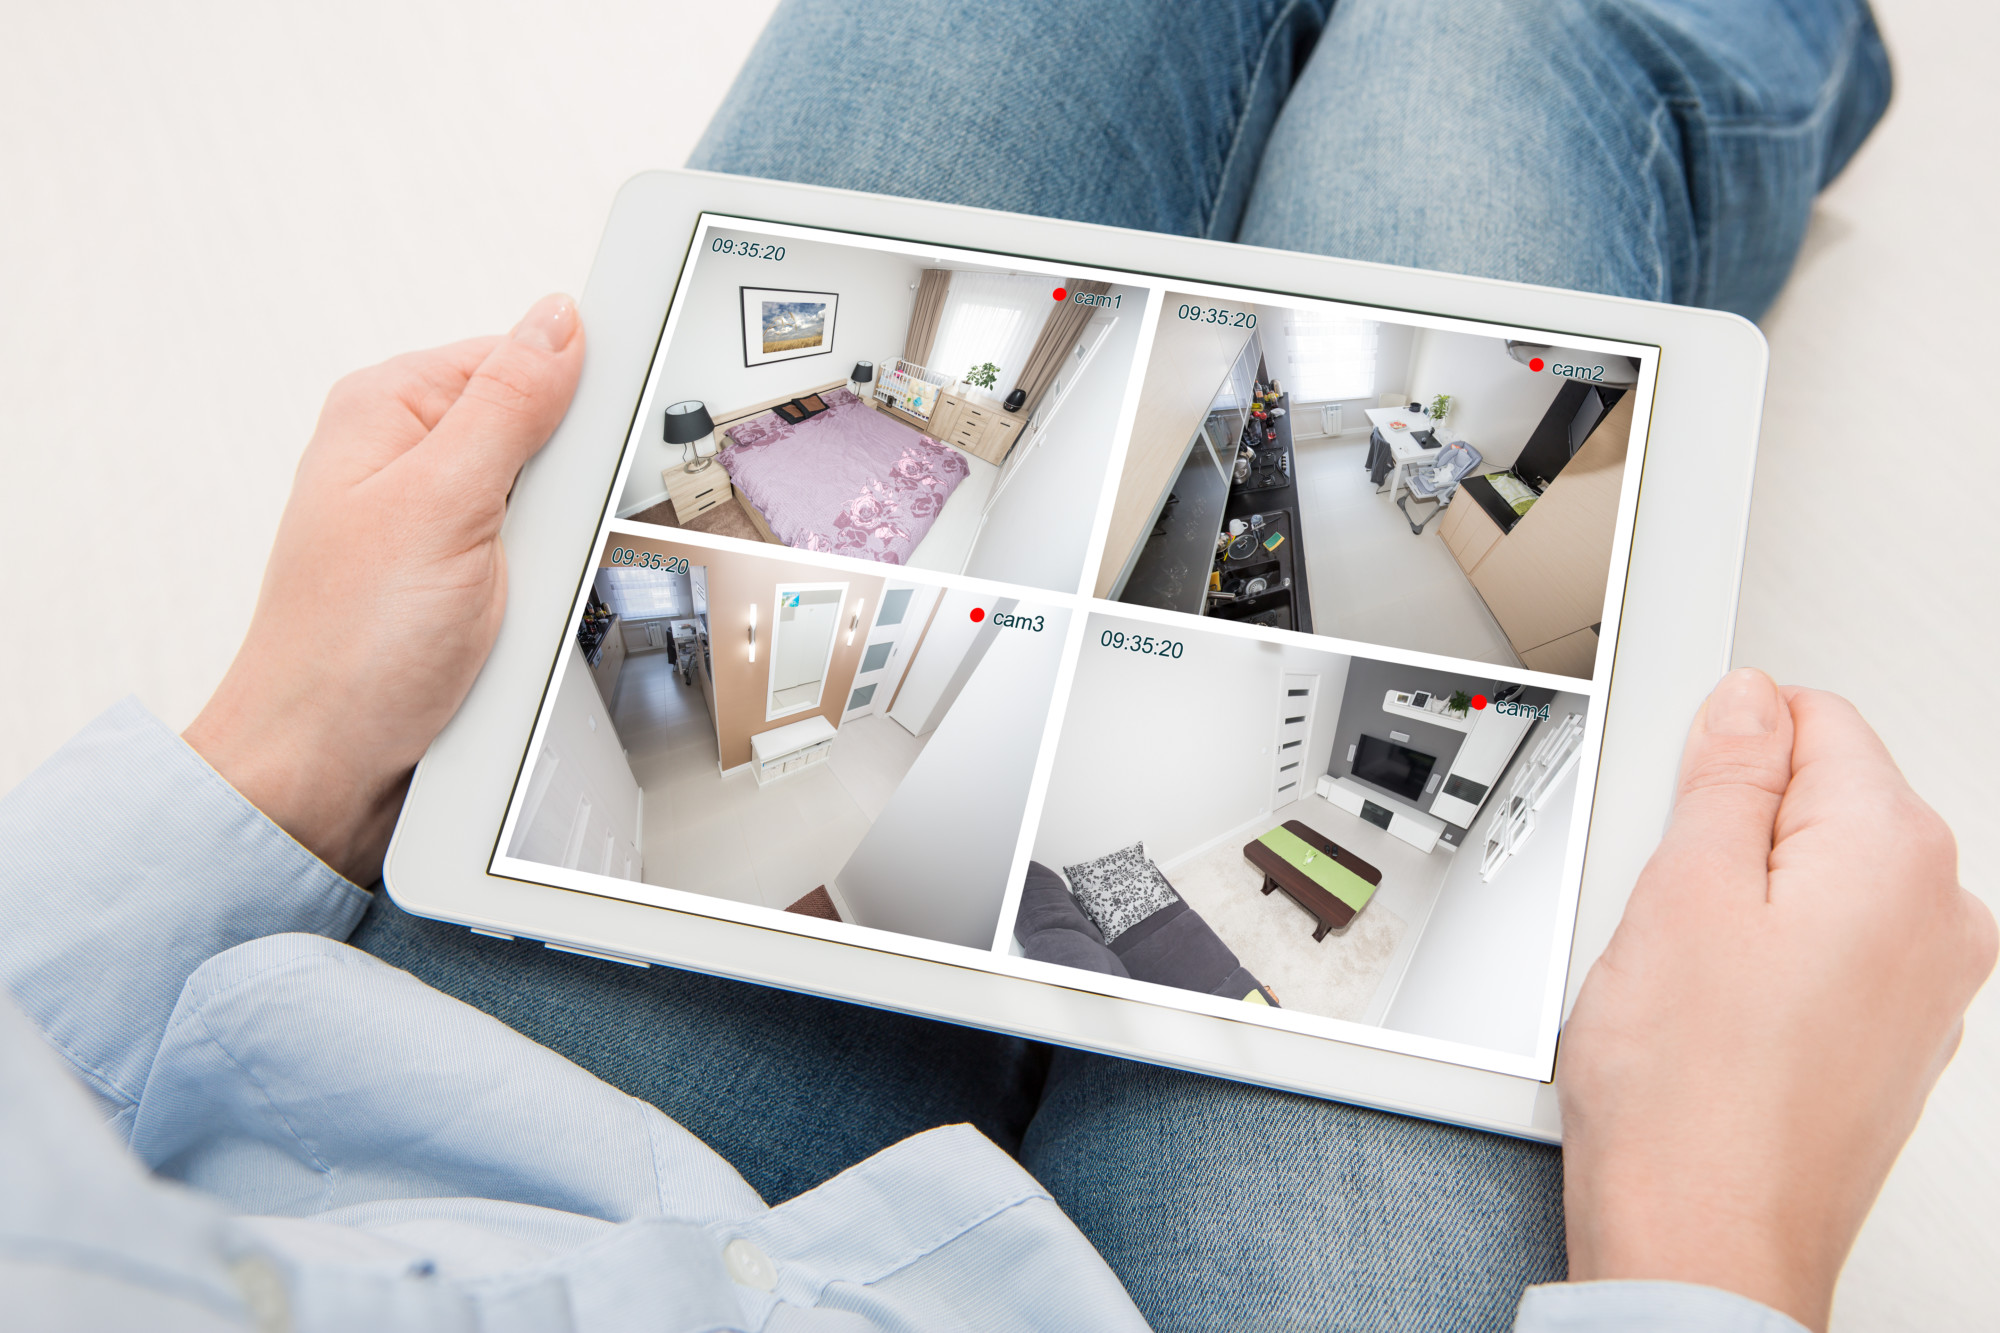 The Best Spots to Place a WiFi Nanny Camera in Your Home